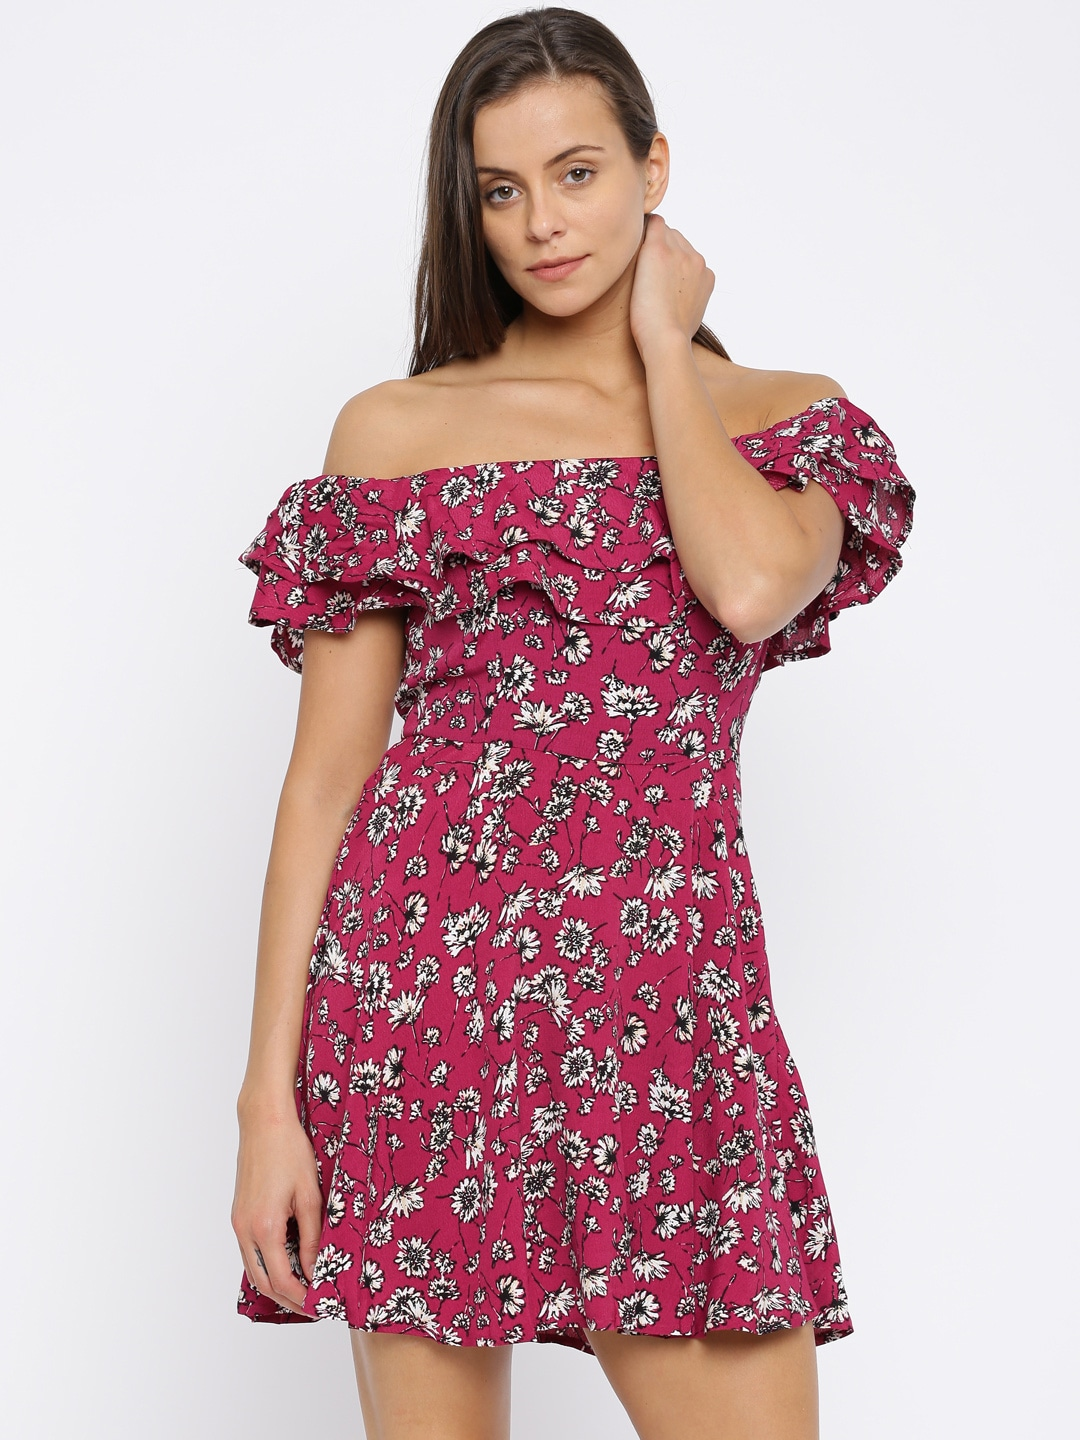 Strapless Dress Forever 21 India